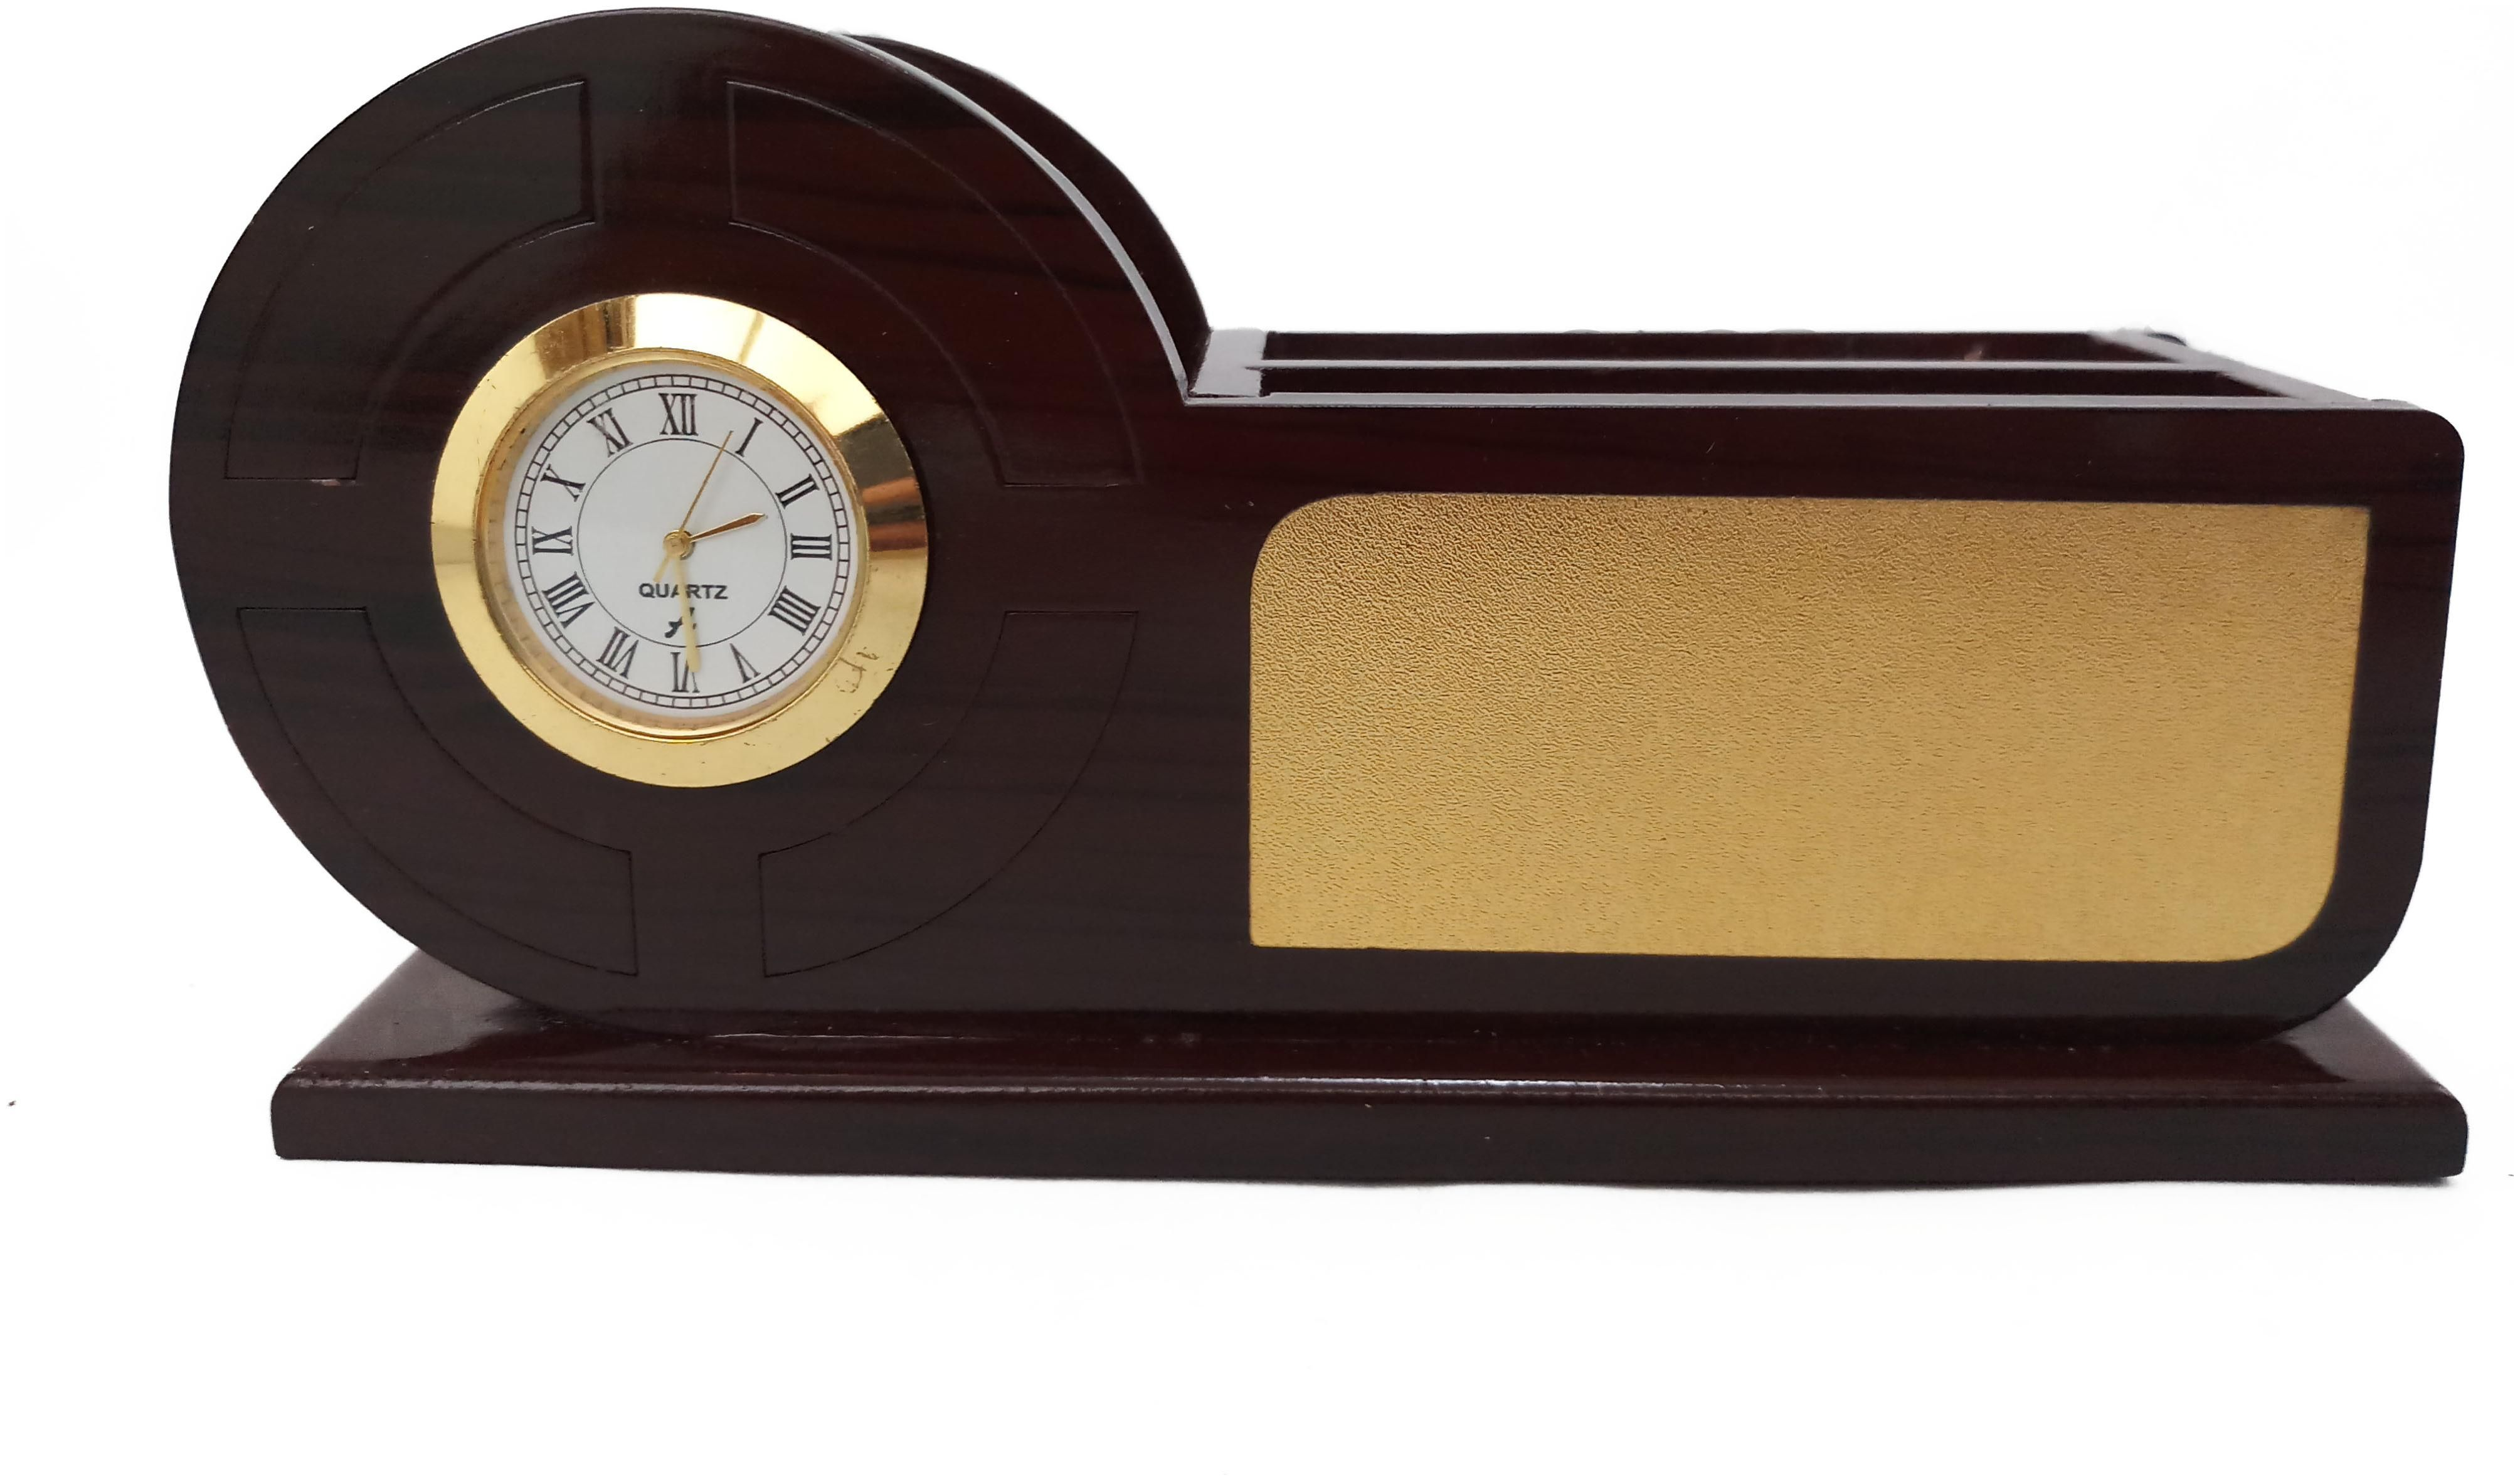 Buy Aromora Stylish Wooden Pen Stand With Clock Table Accessories All In One Multipurpose Desk Organizer Brown Online At Low Prices In India Paytmmall Com Table Clock Wooden Pen Desk Organization